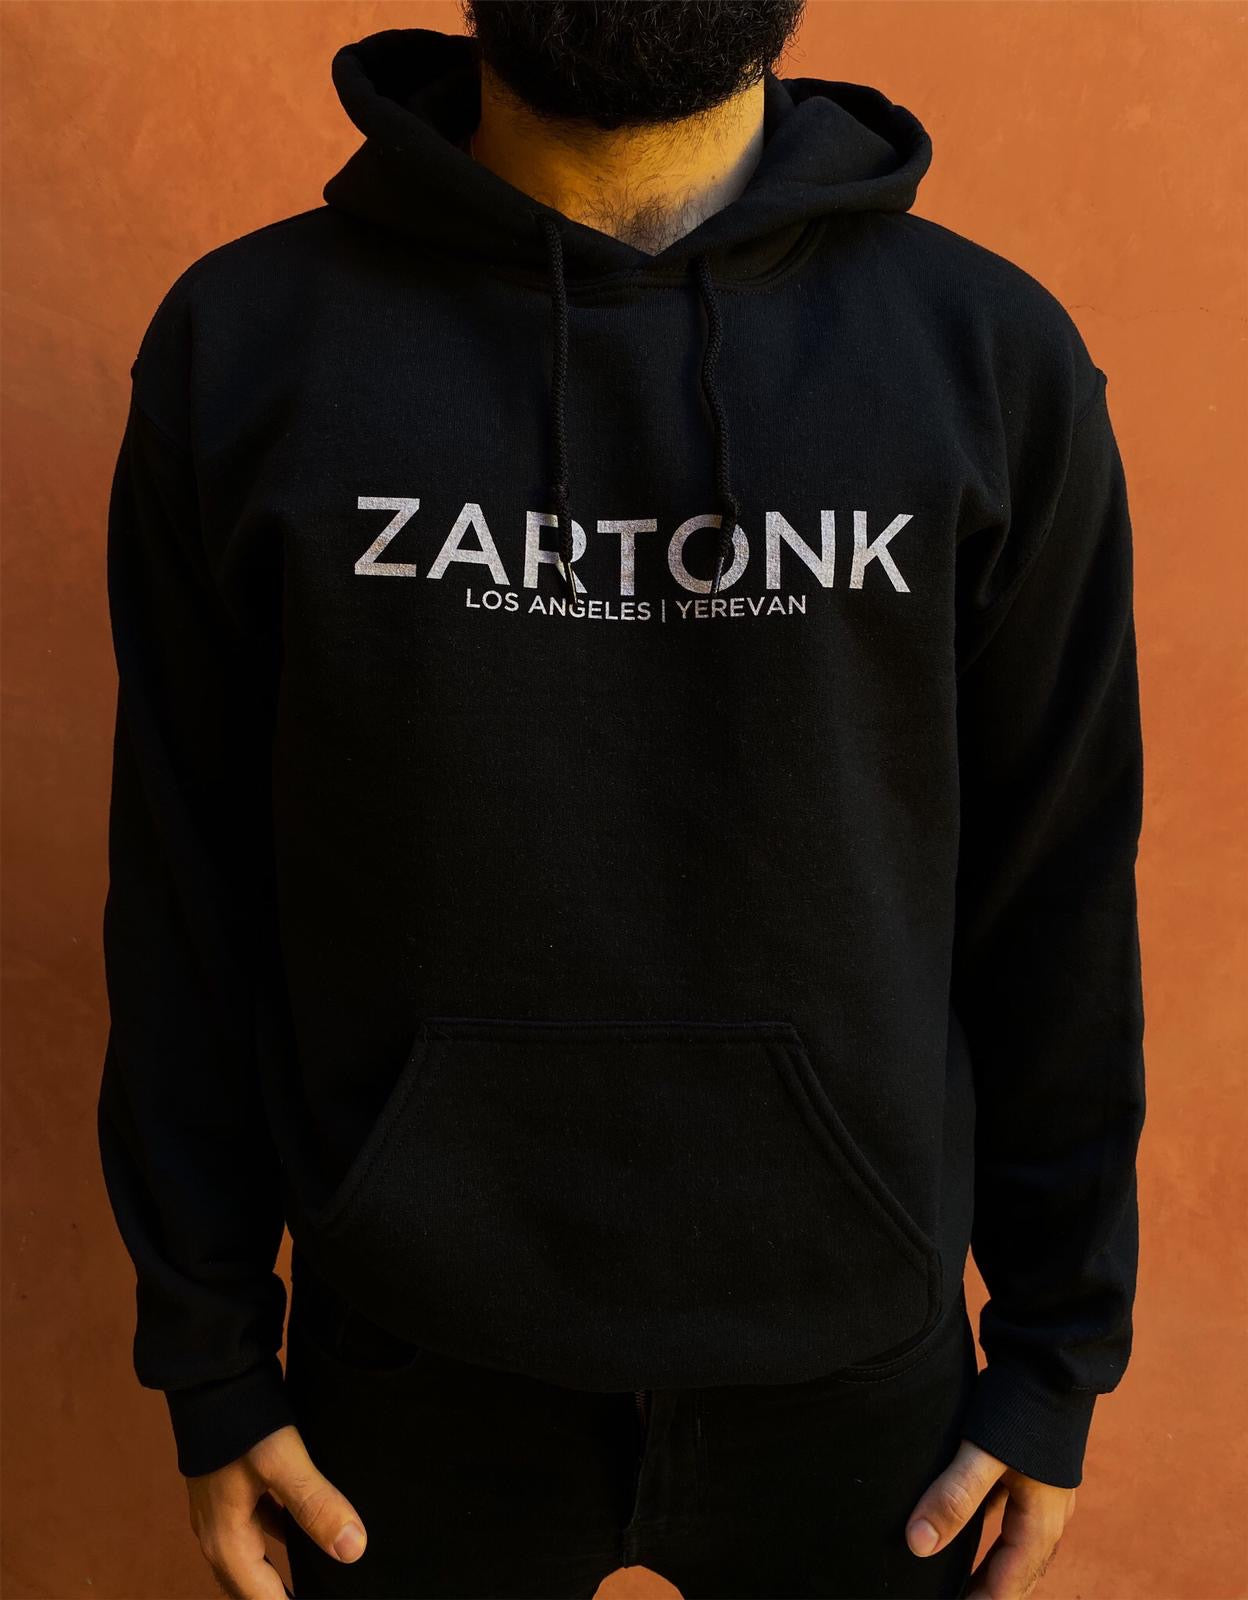 ZARTONK Los Angeles | Yerevan Sweatshirt